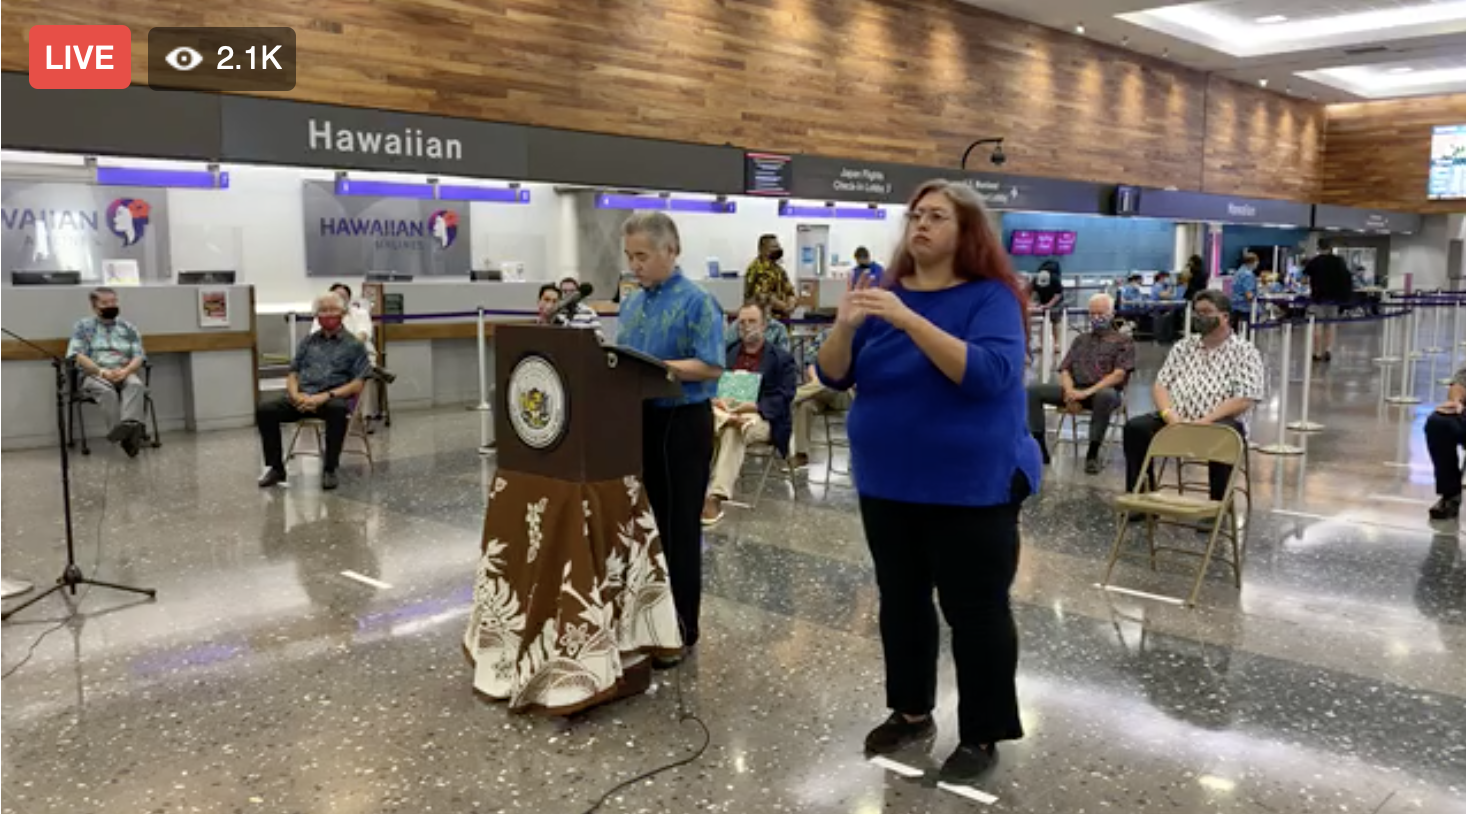 BREAKING: Gov. Ige: Hawai'i to Implement Pre-Travel Testing Option on Aug. 1 as Alternative to Quarantine